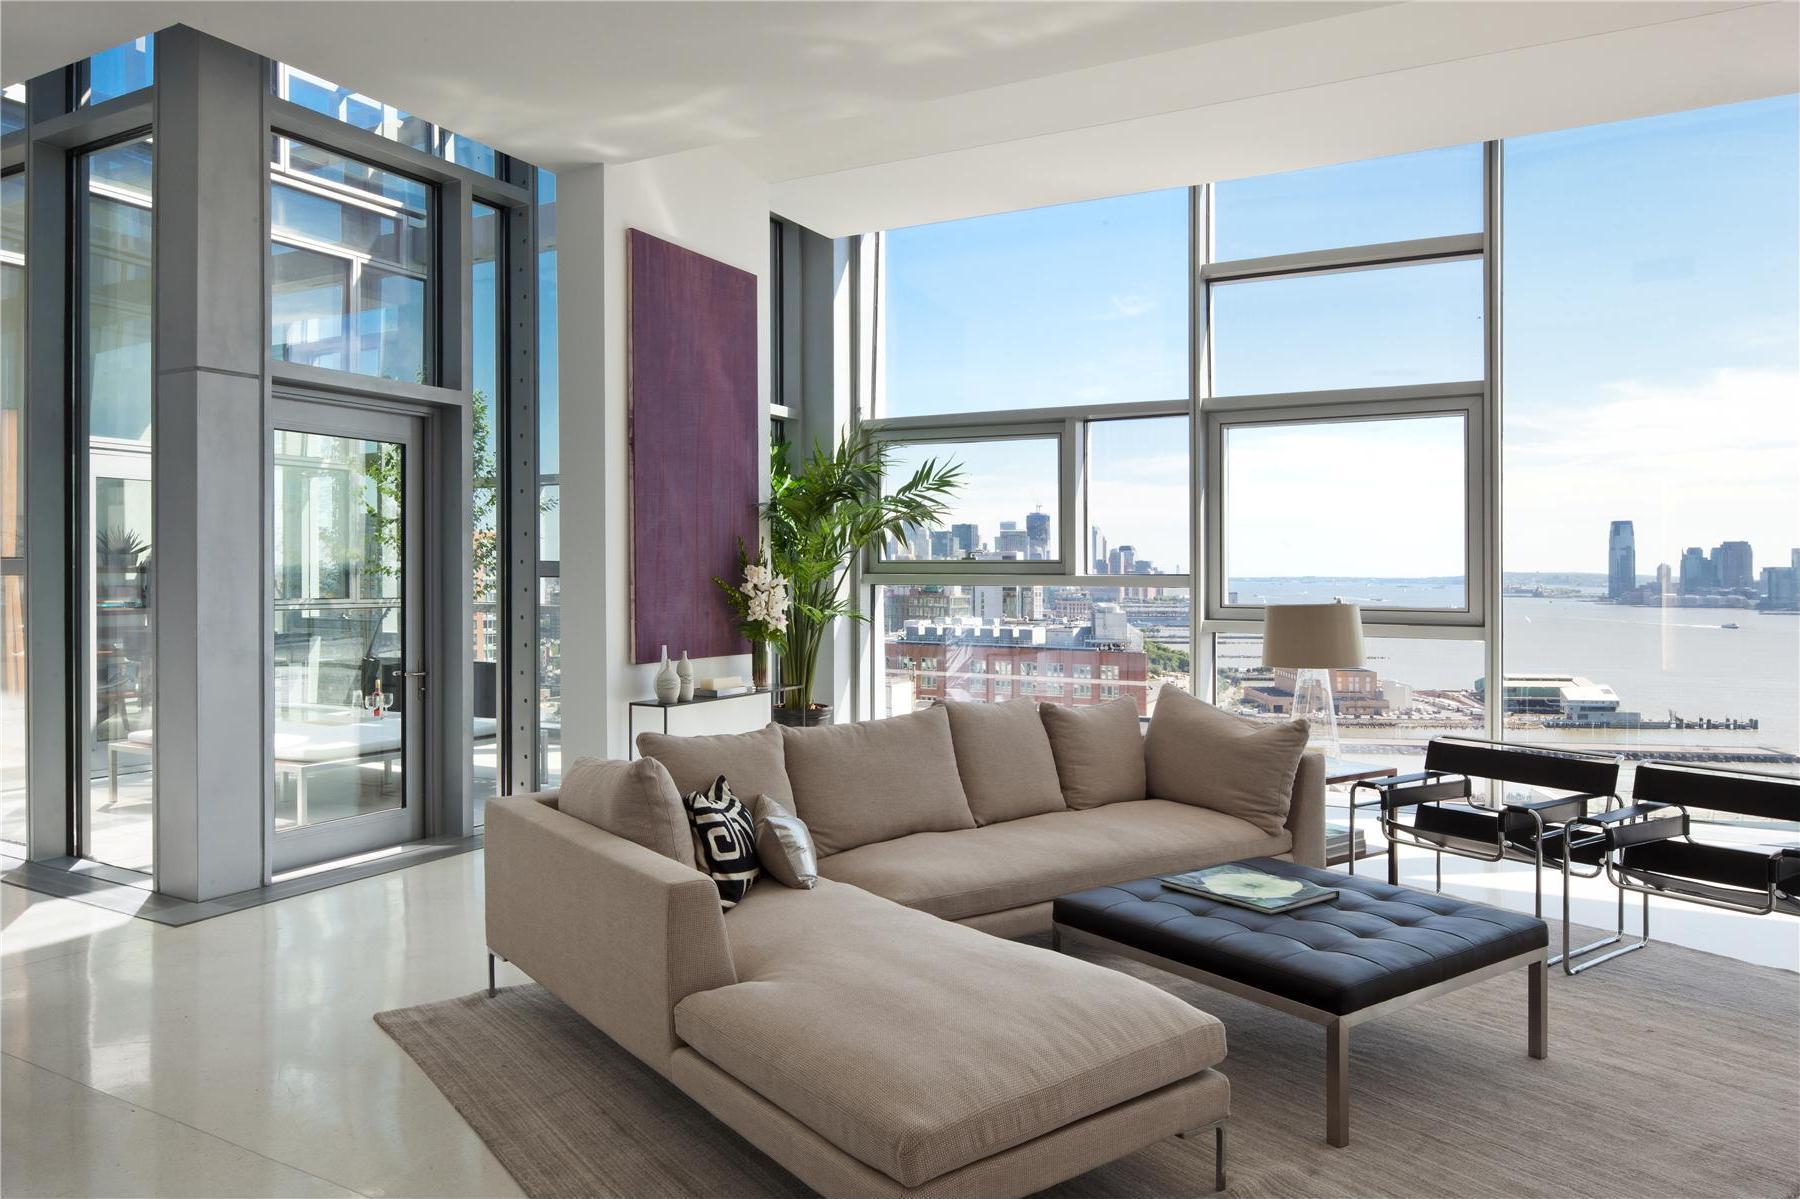 Luxury Manhattan House With Big Wall Windows Brown Sofa And Square Table  With Rug